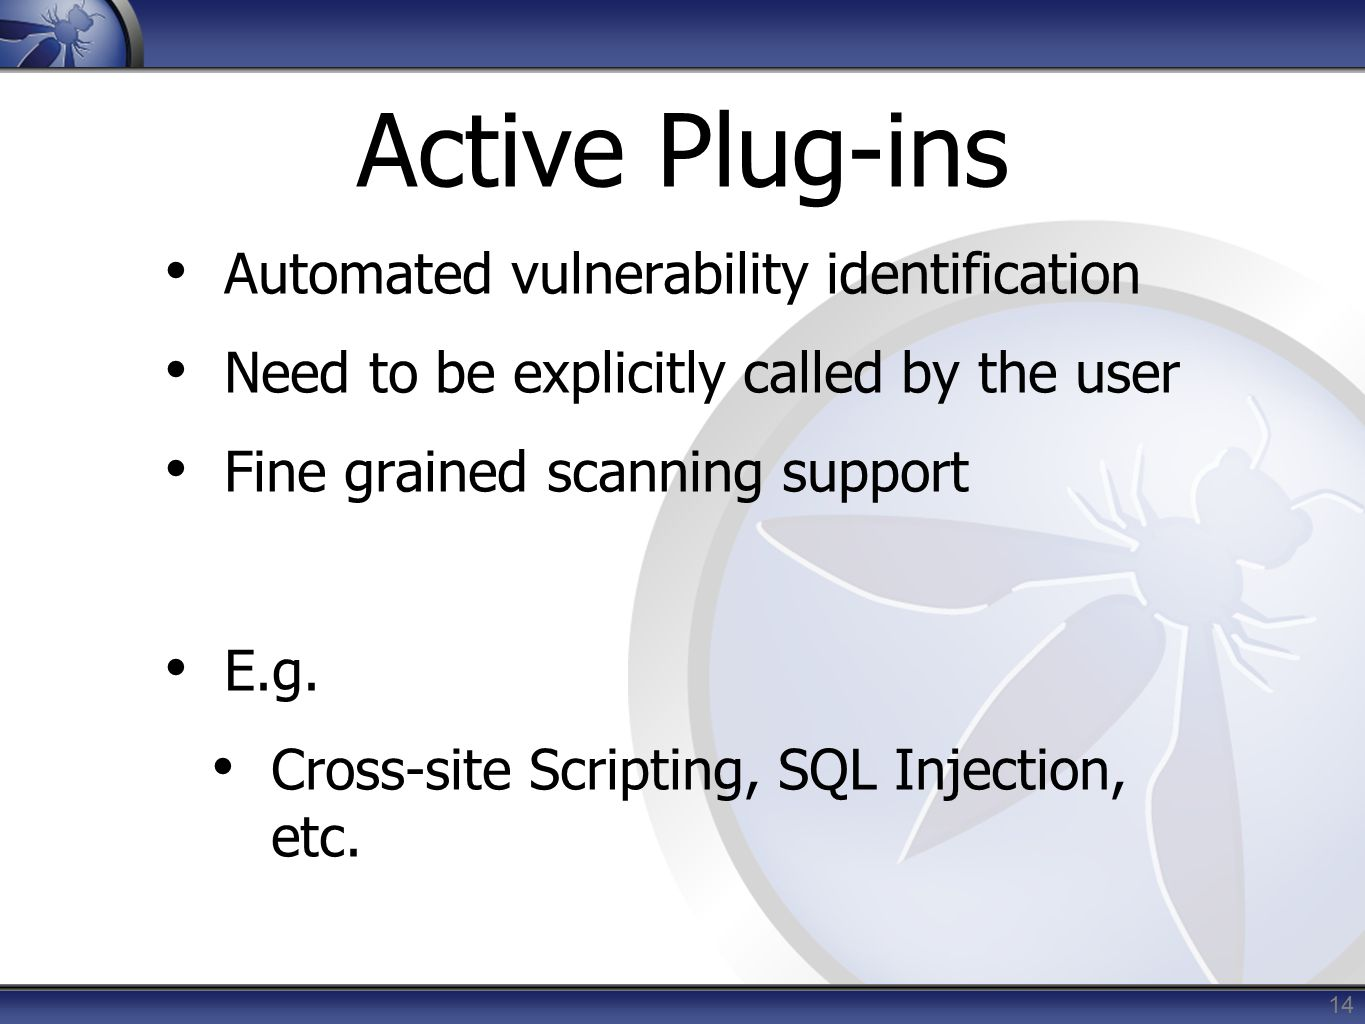 Active Plug-ins Automated vulnerability identification Need to be explicitly called by the user Fine grained scanning support E.g. Cross-site Scriptin